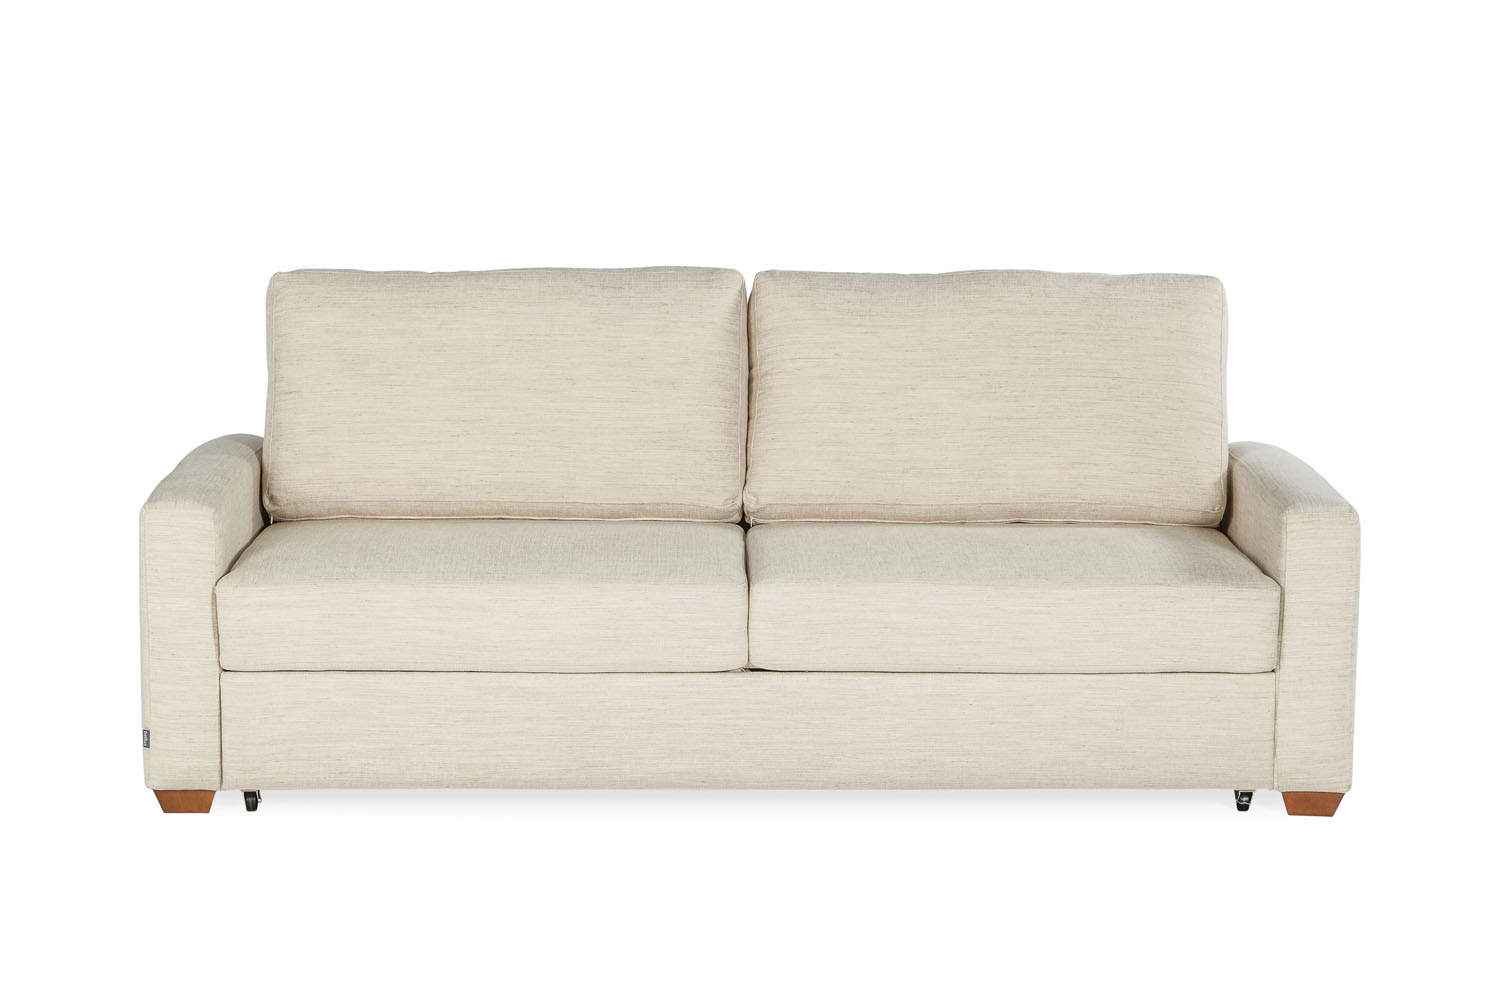 Lucca sofa erpo bequeme polstermbel bei prinz wohnen for Bequeme couch